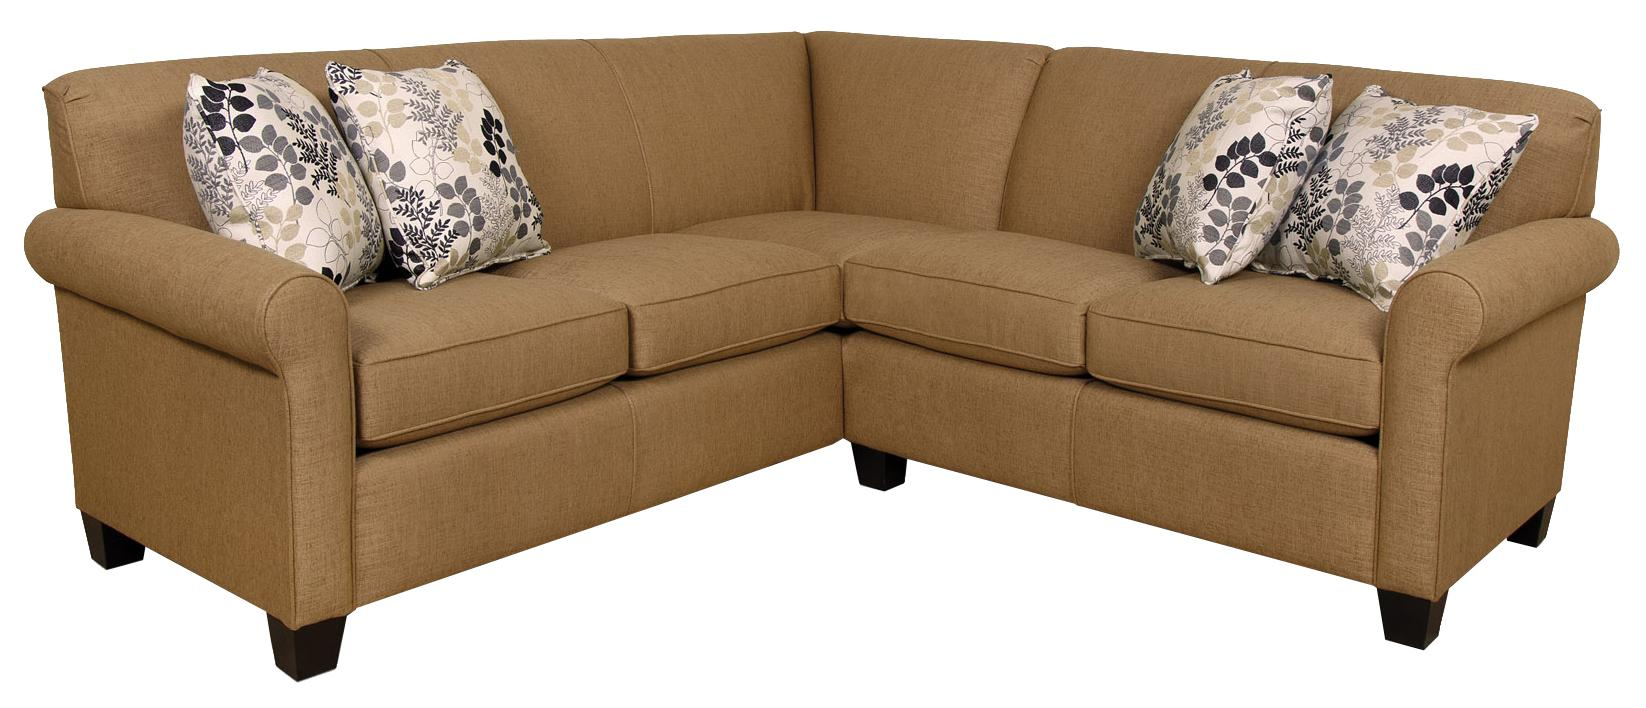 Angie  Sectional Sofa by England at Lapeer Furniture & Mattress Center